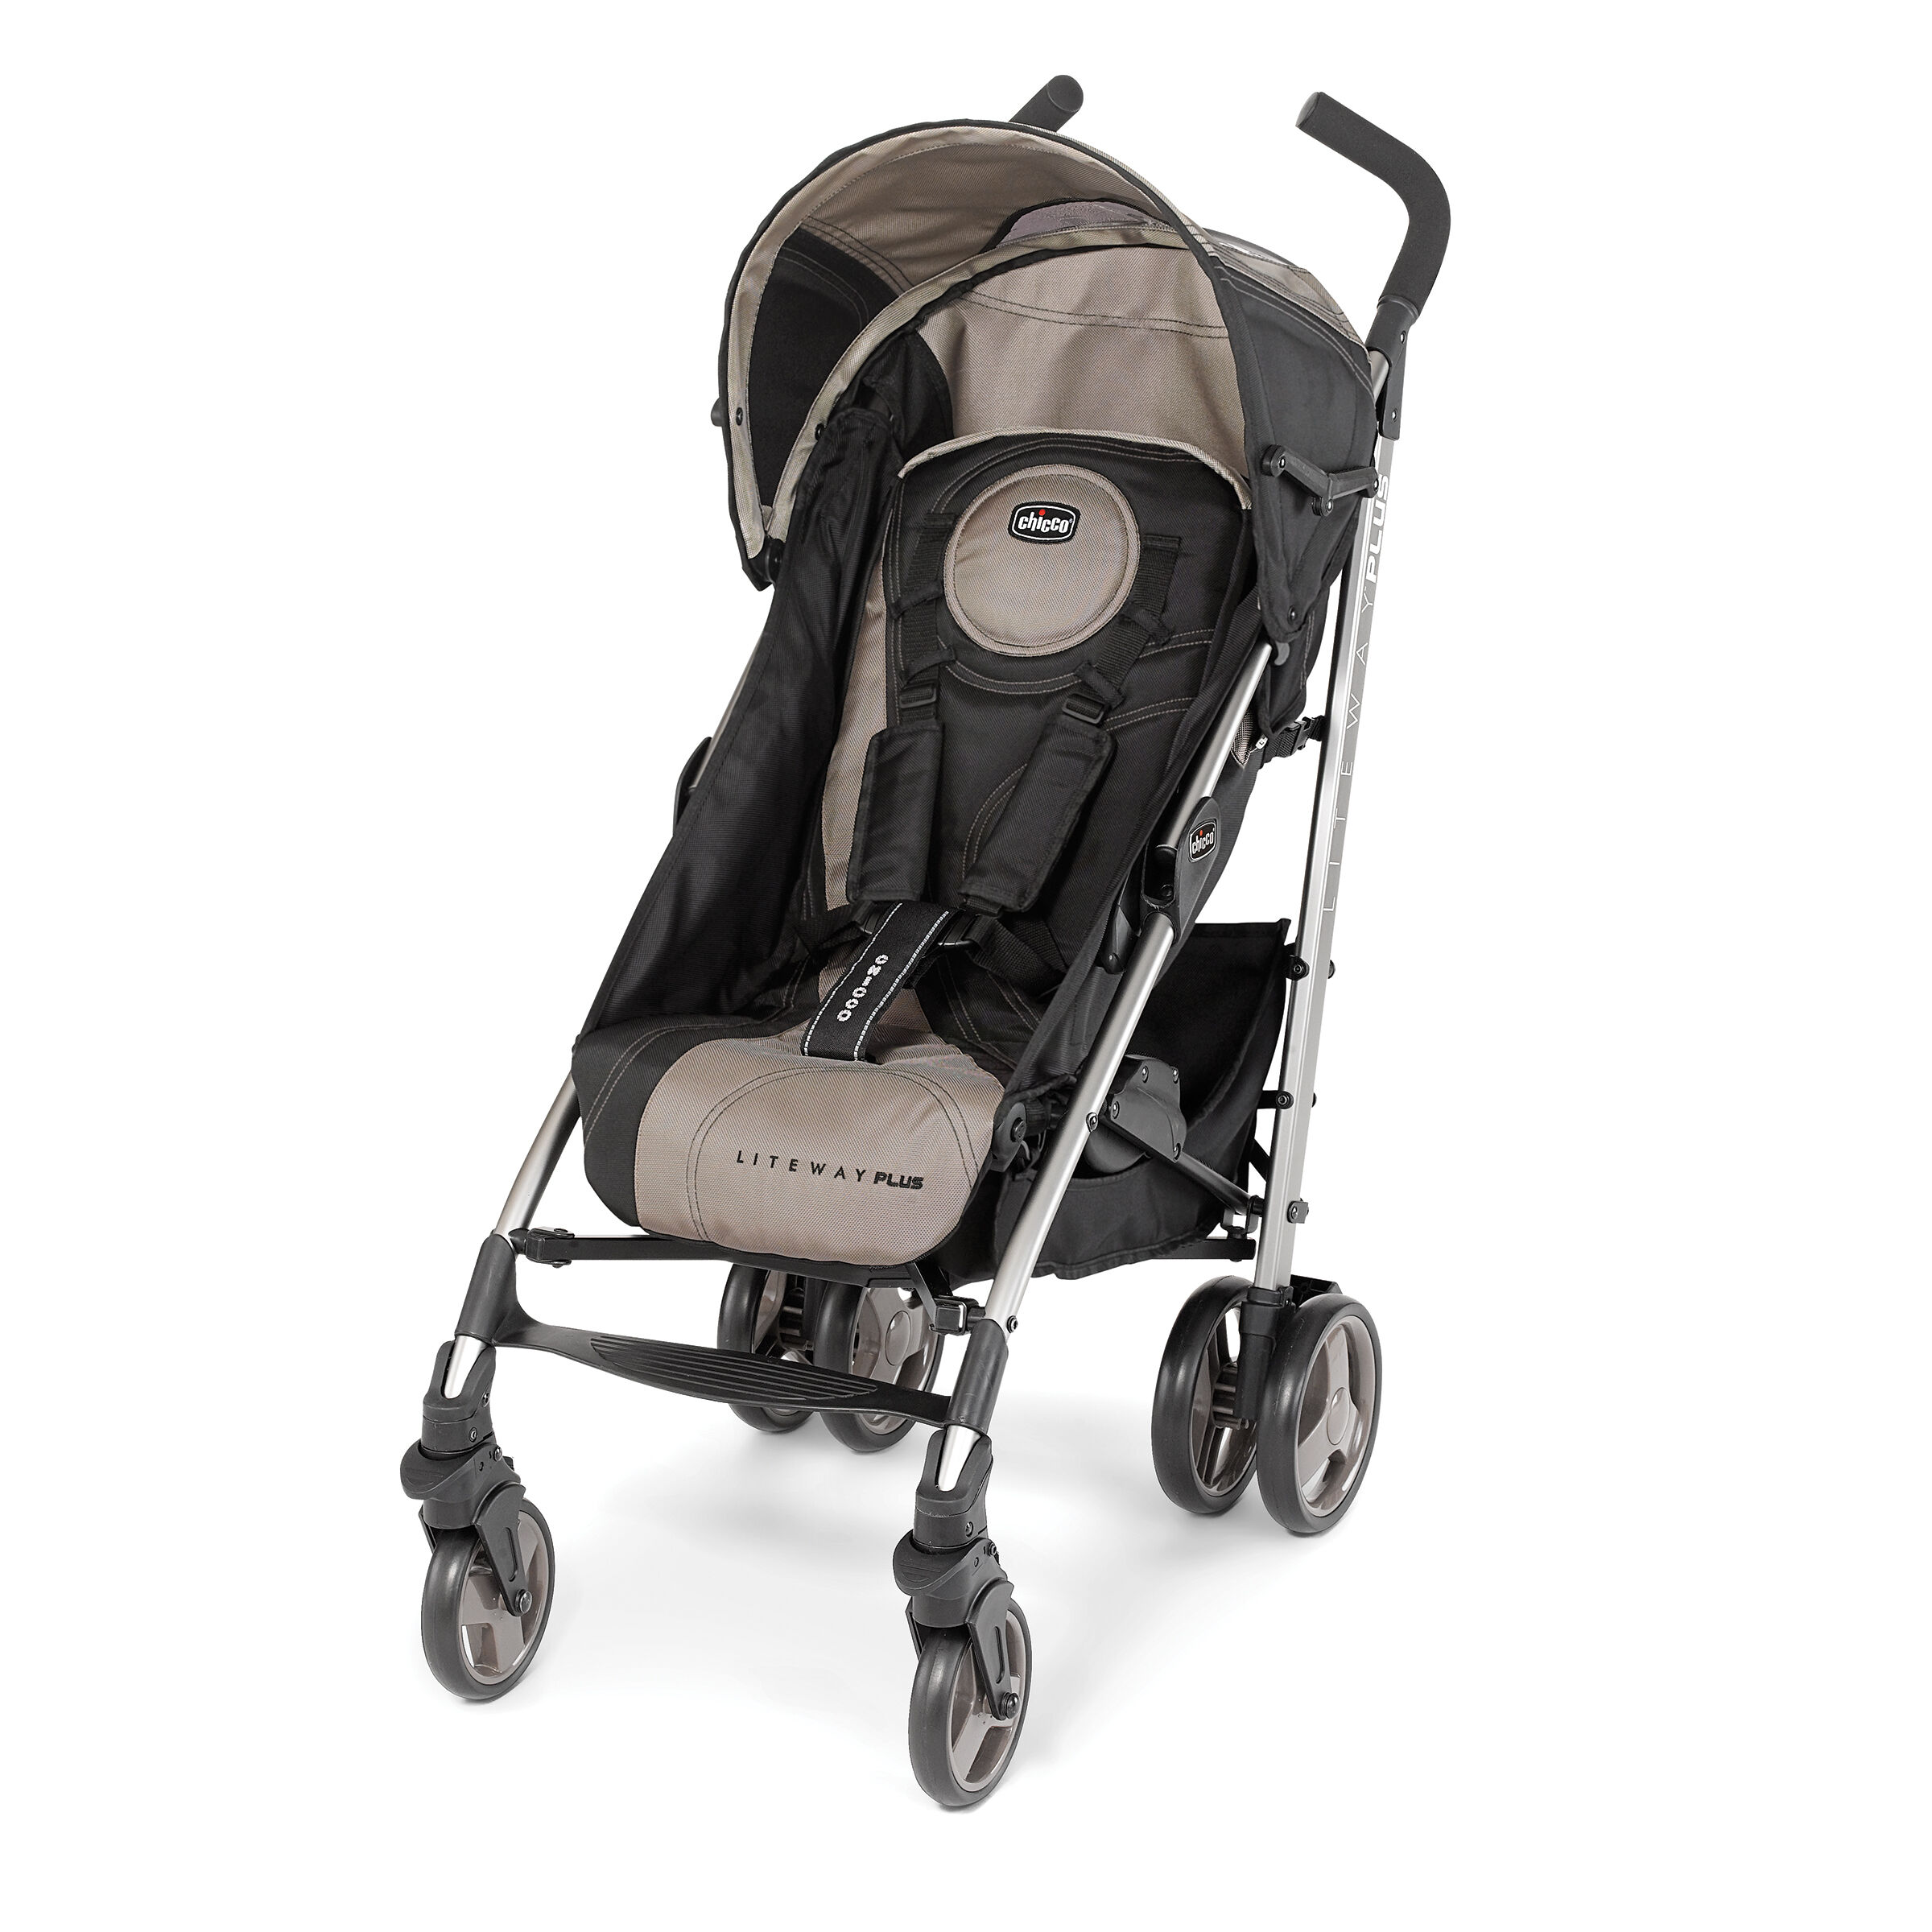 When To Switch From Car Seat To Stroller Chicco Liteway Plus 2 In 1 Stroller Champagne